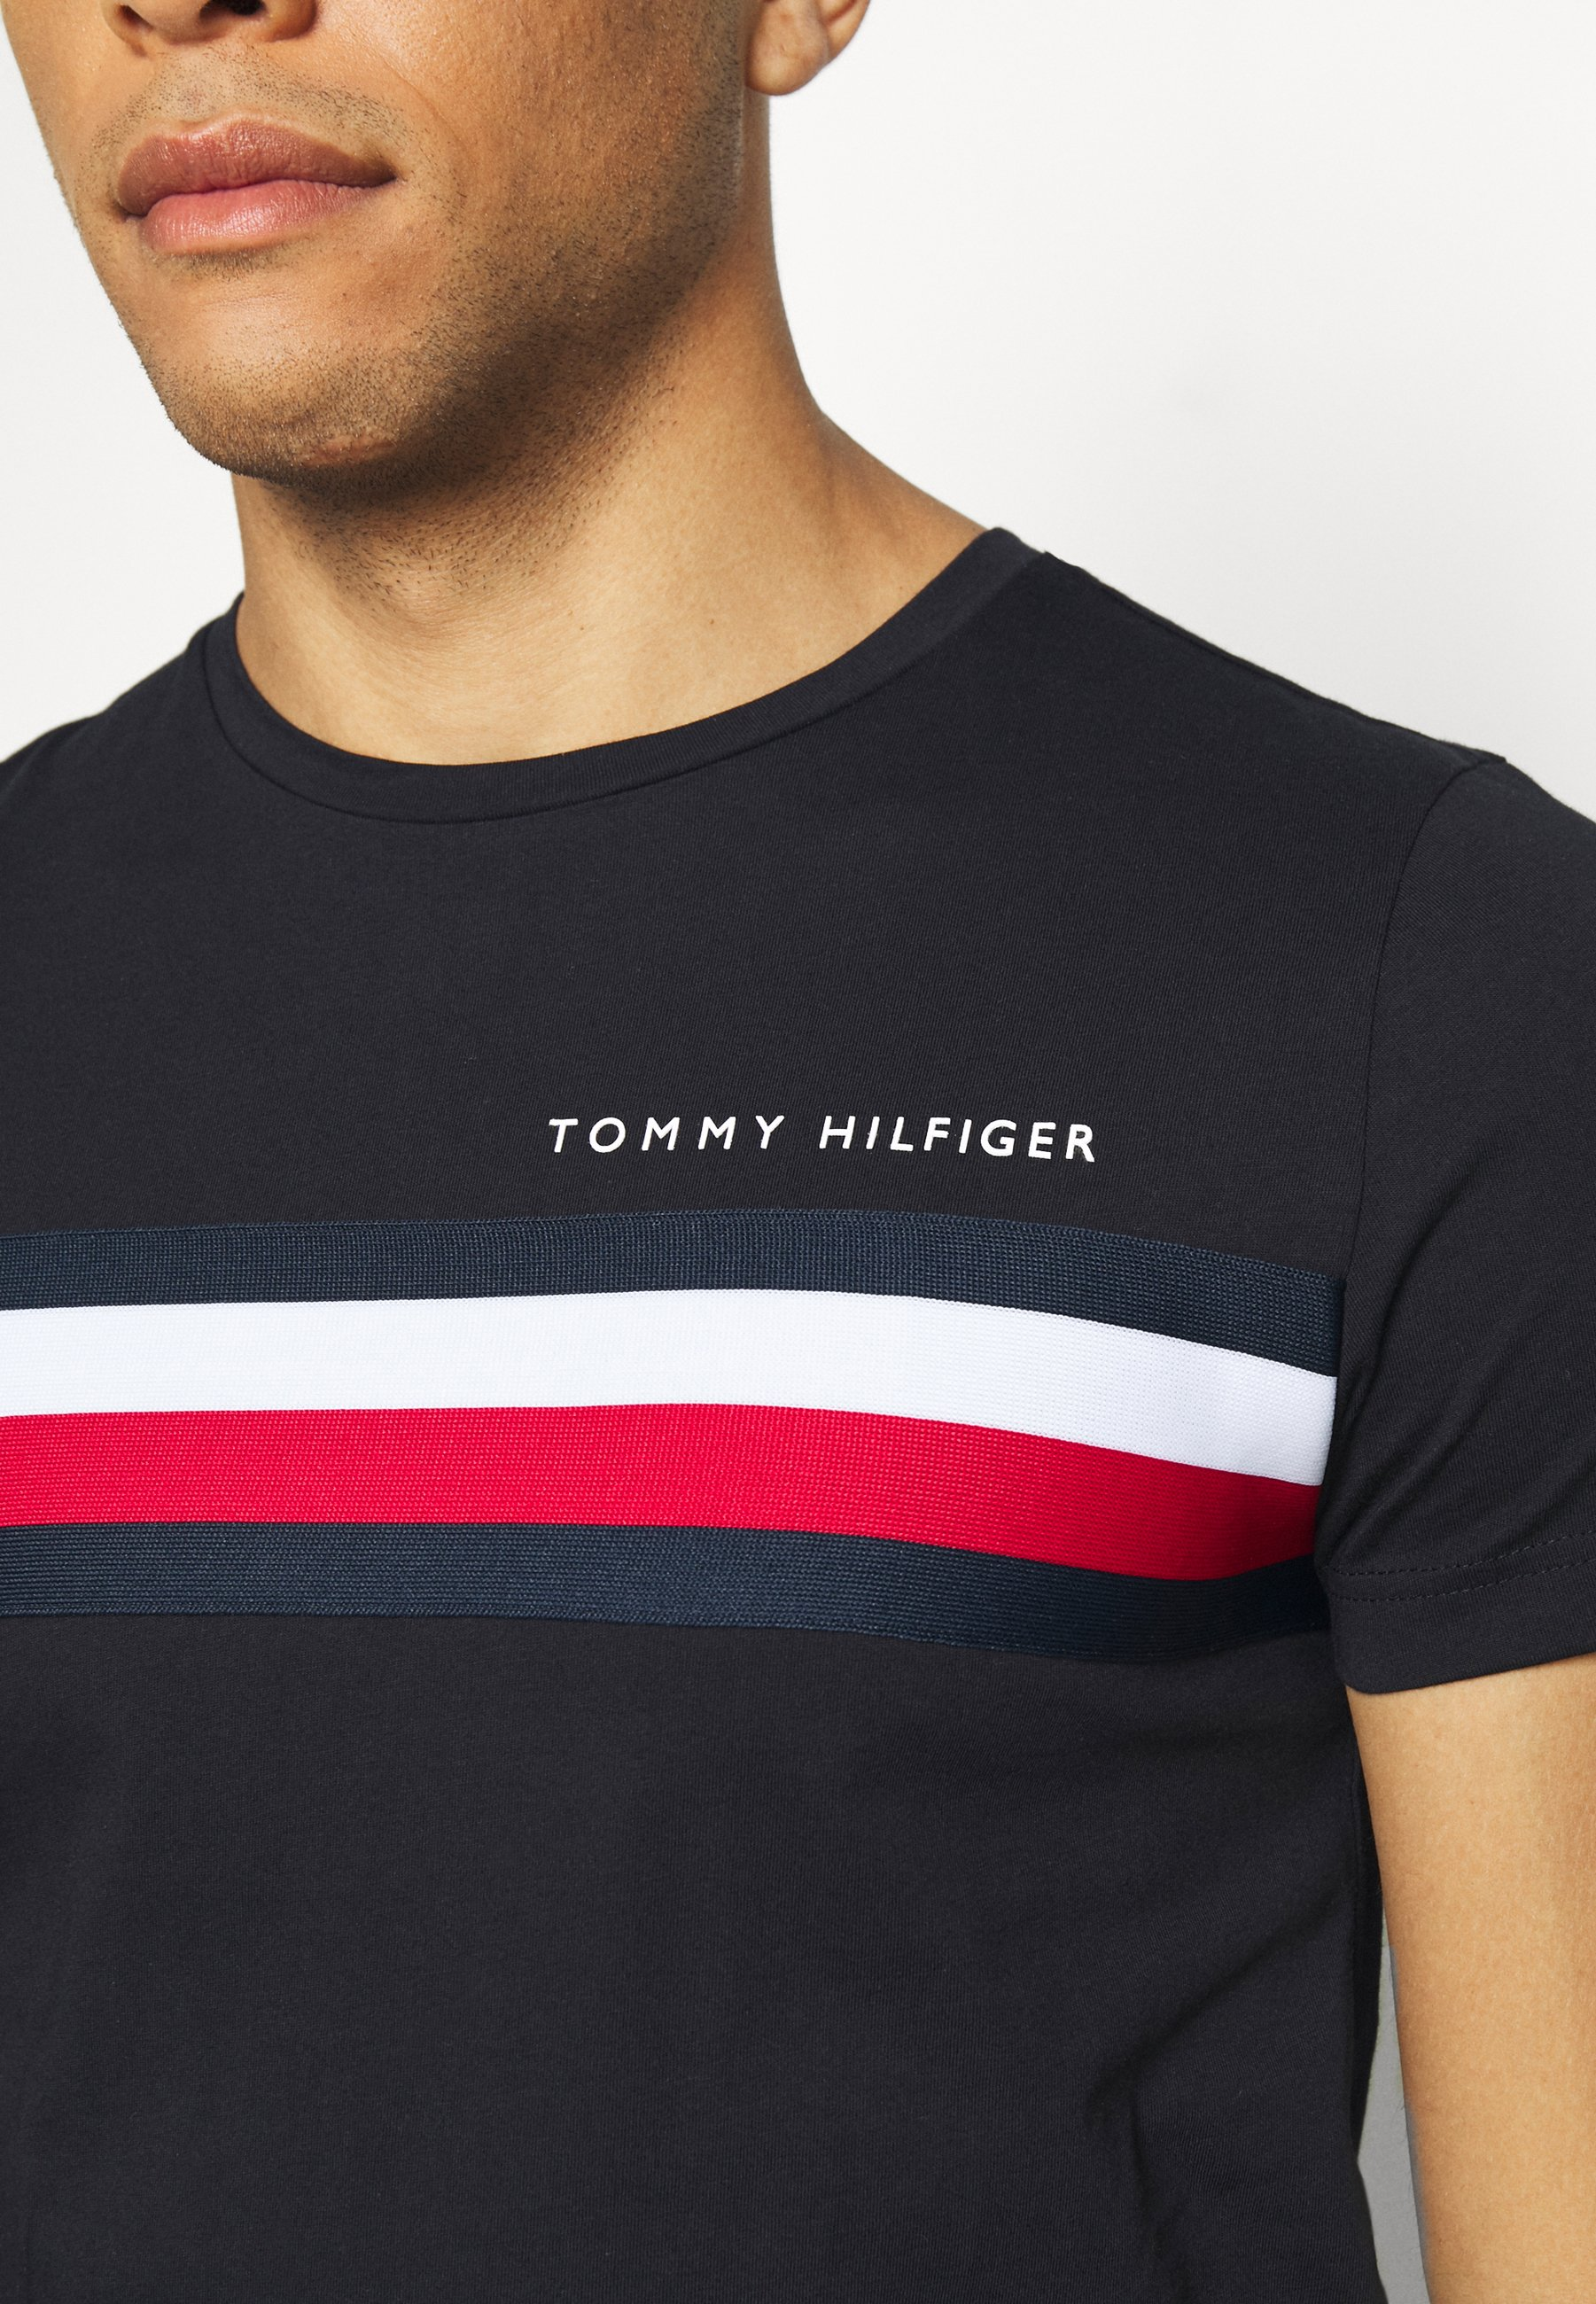 tommy hilfiger family shirts